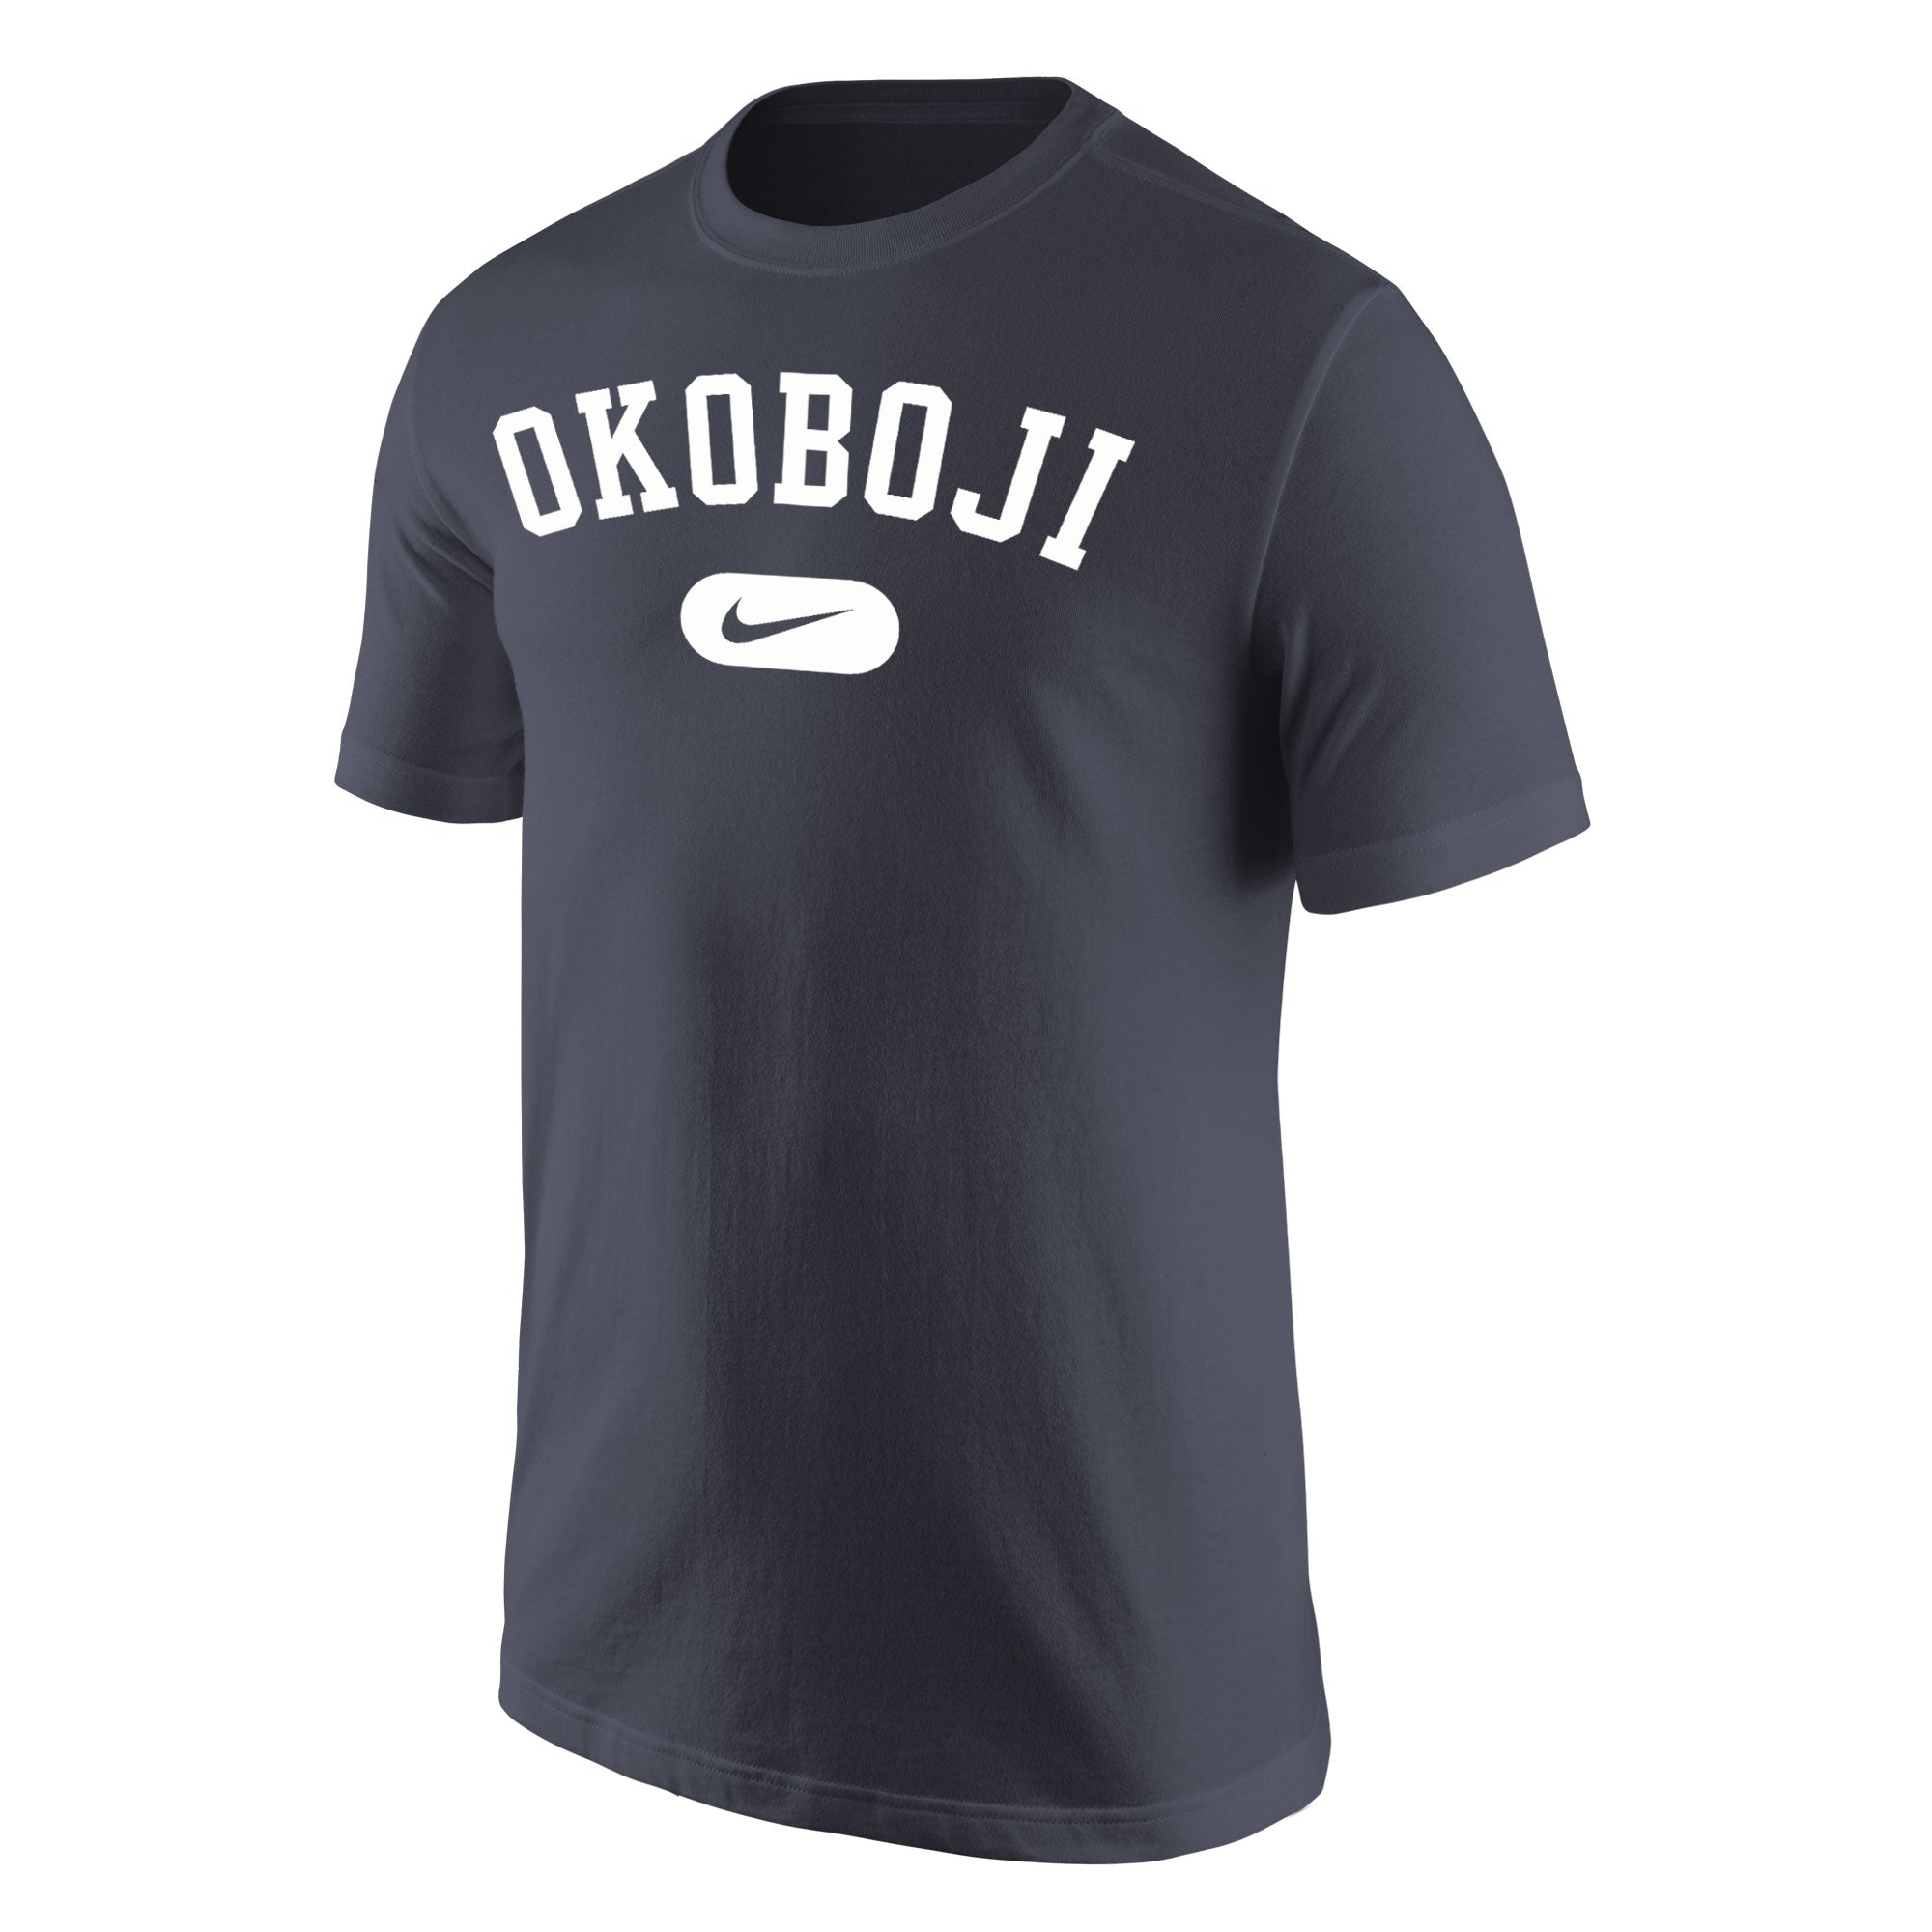 Okoboji Nike Core Cotton Short Sleeve Tee - Anthracite